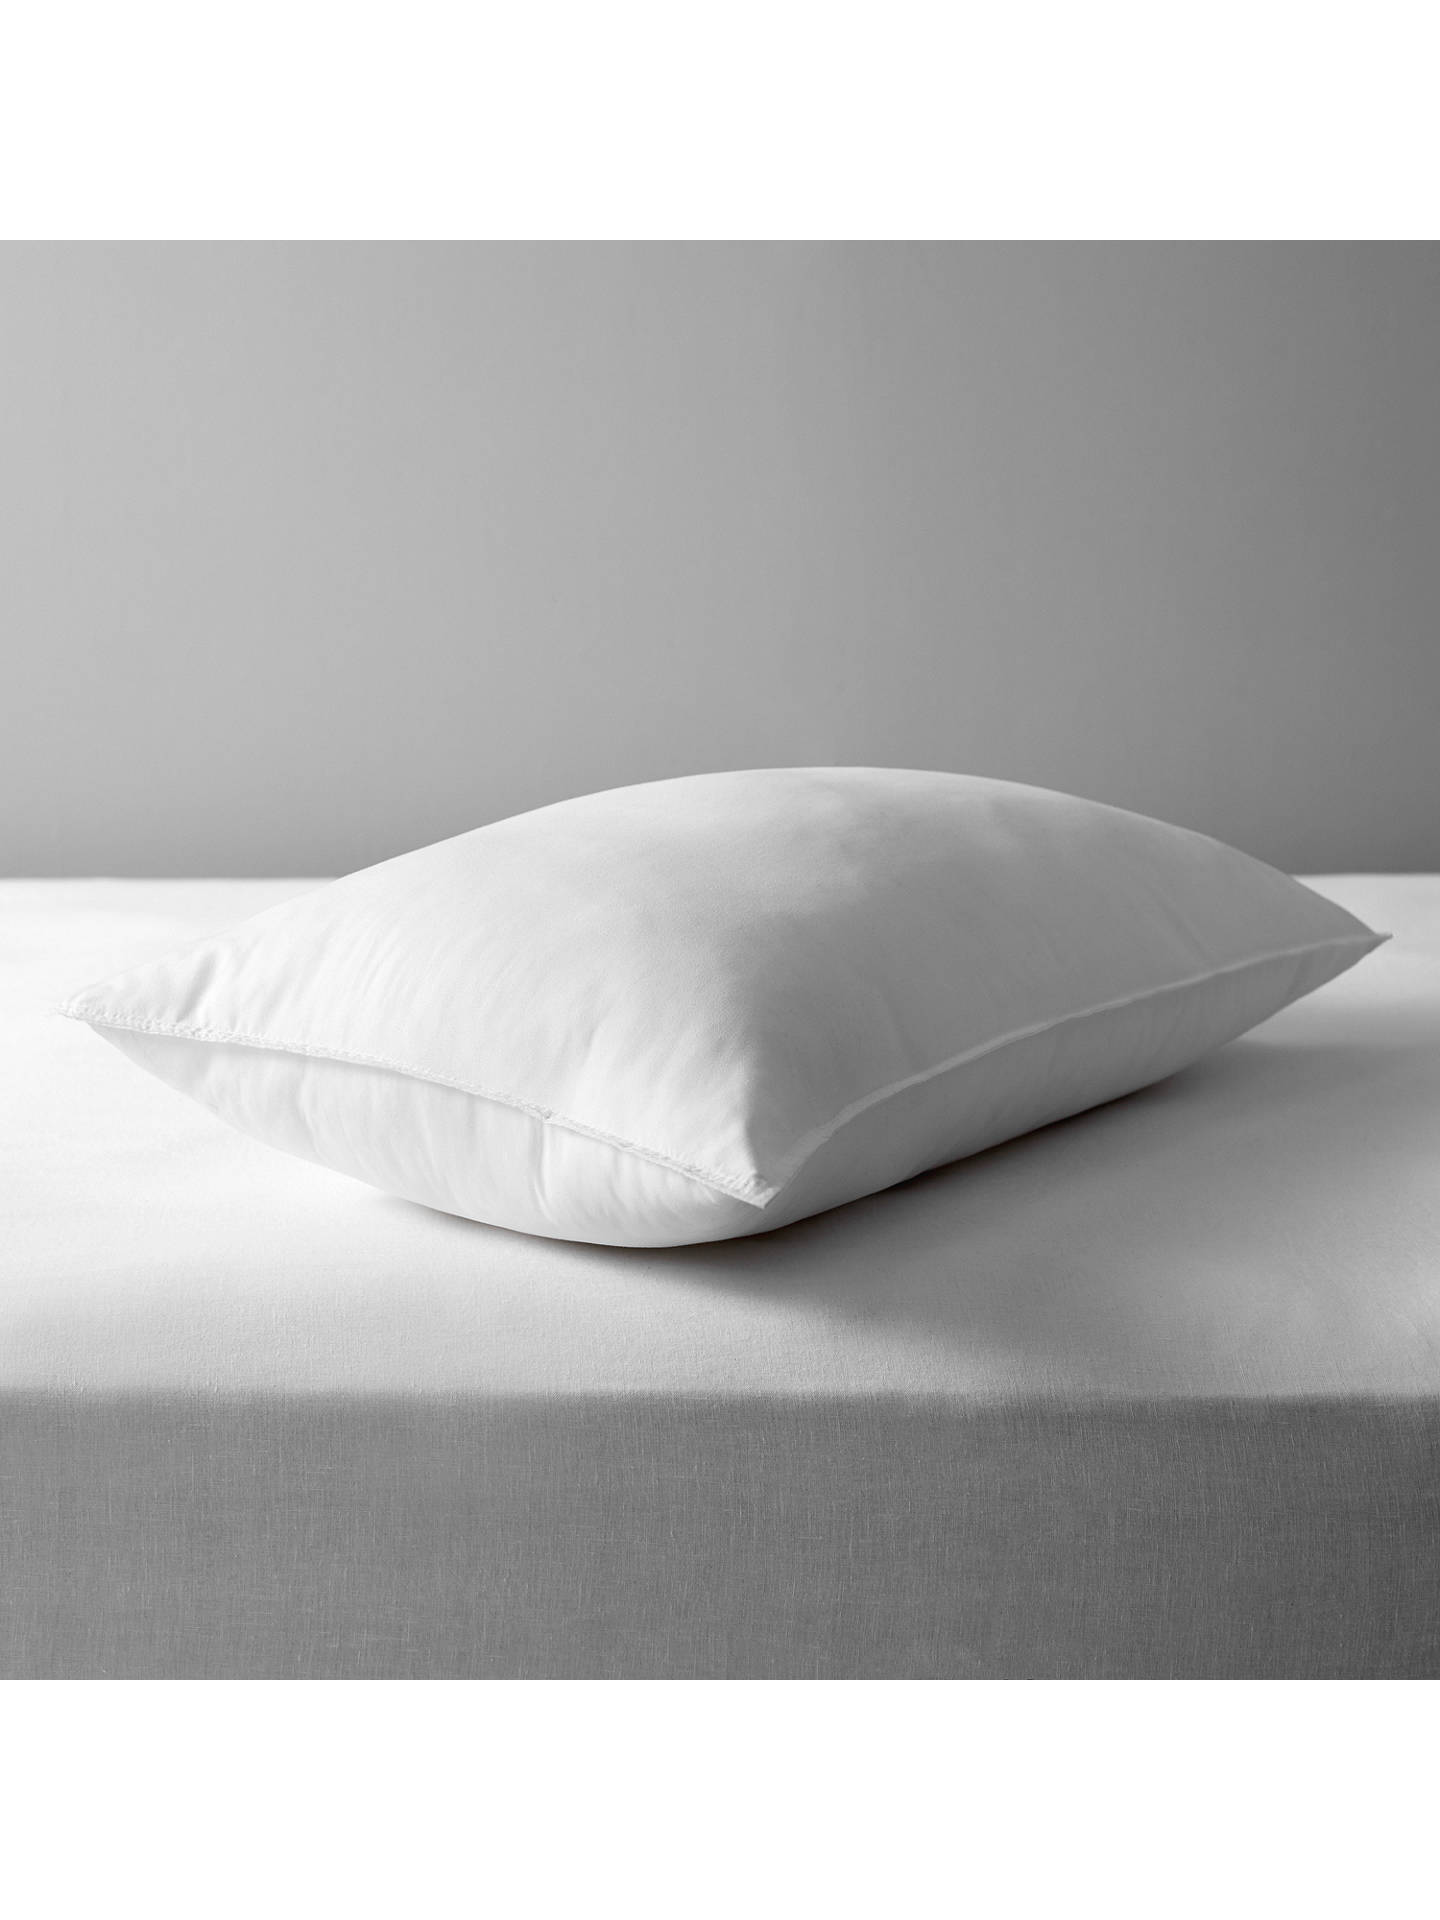 John Lewis & Partners Synthetic Soft Touch Washable Standard Pillow, Medium/Firm | £10